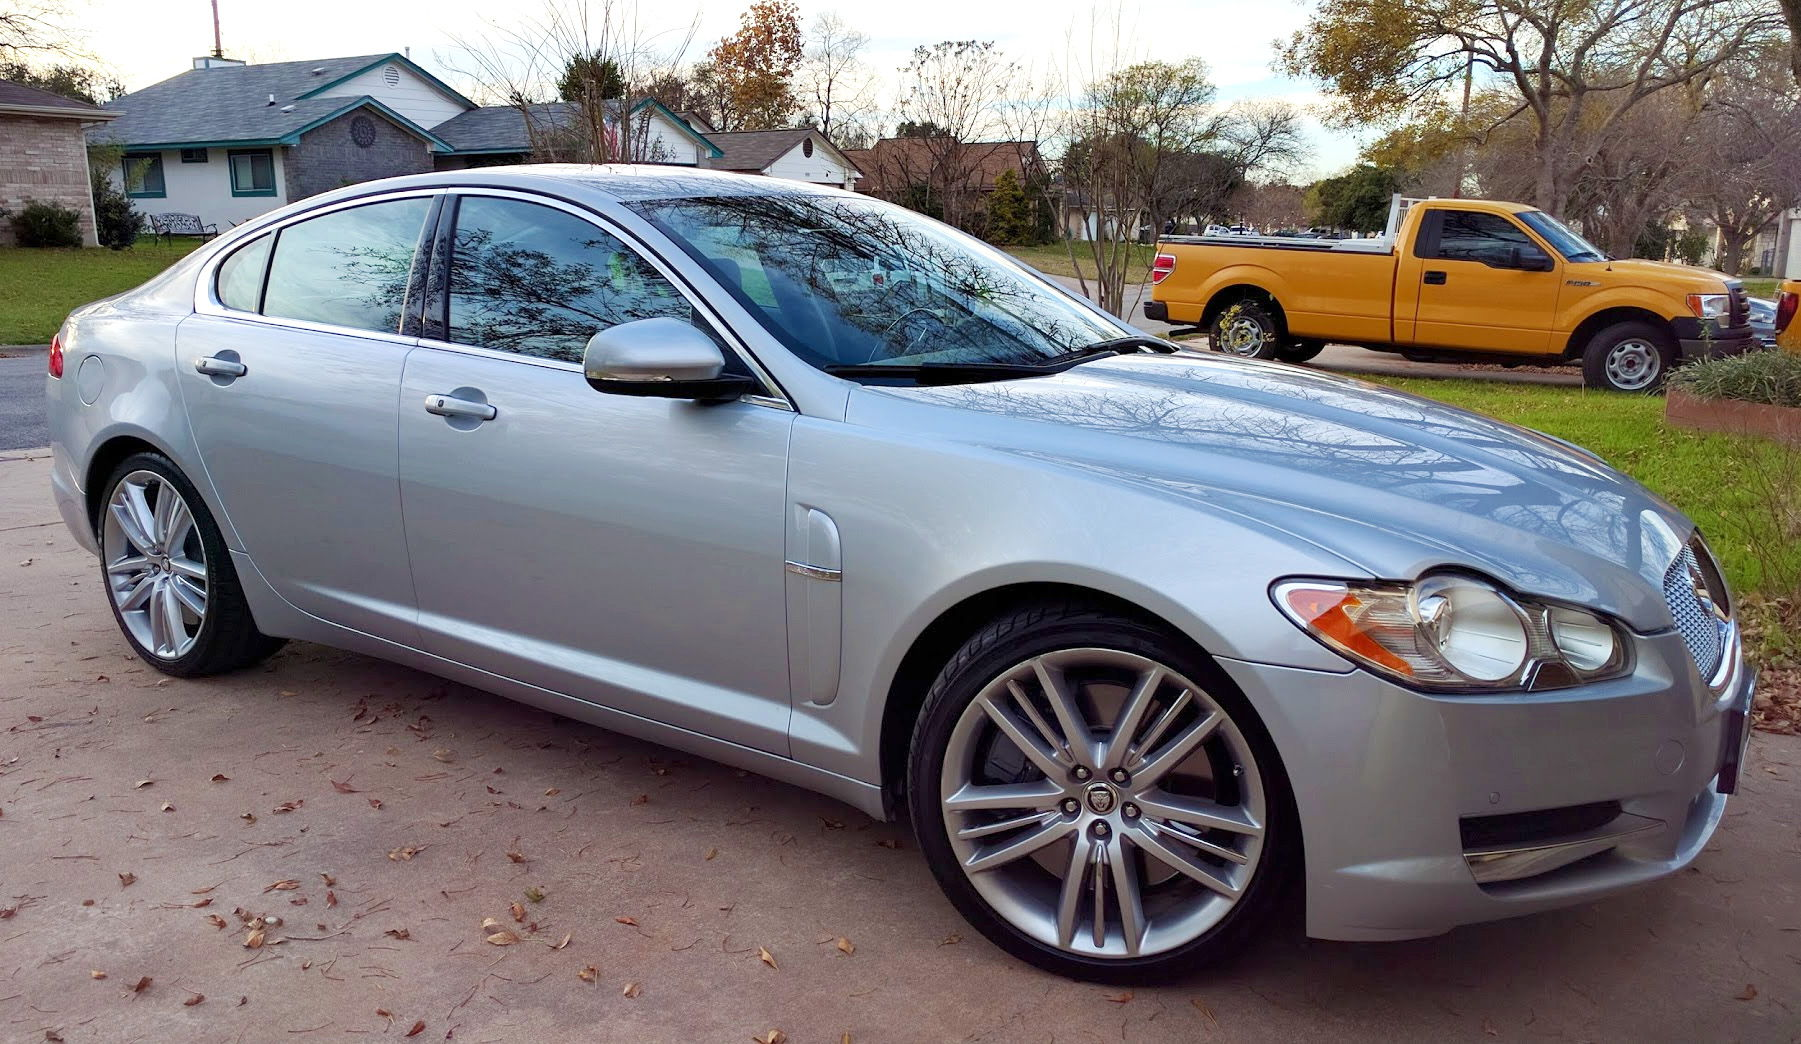 gallery metallic mod index vehicle silver jaguar wheels xf category gwg image rims